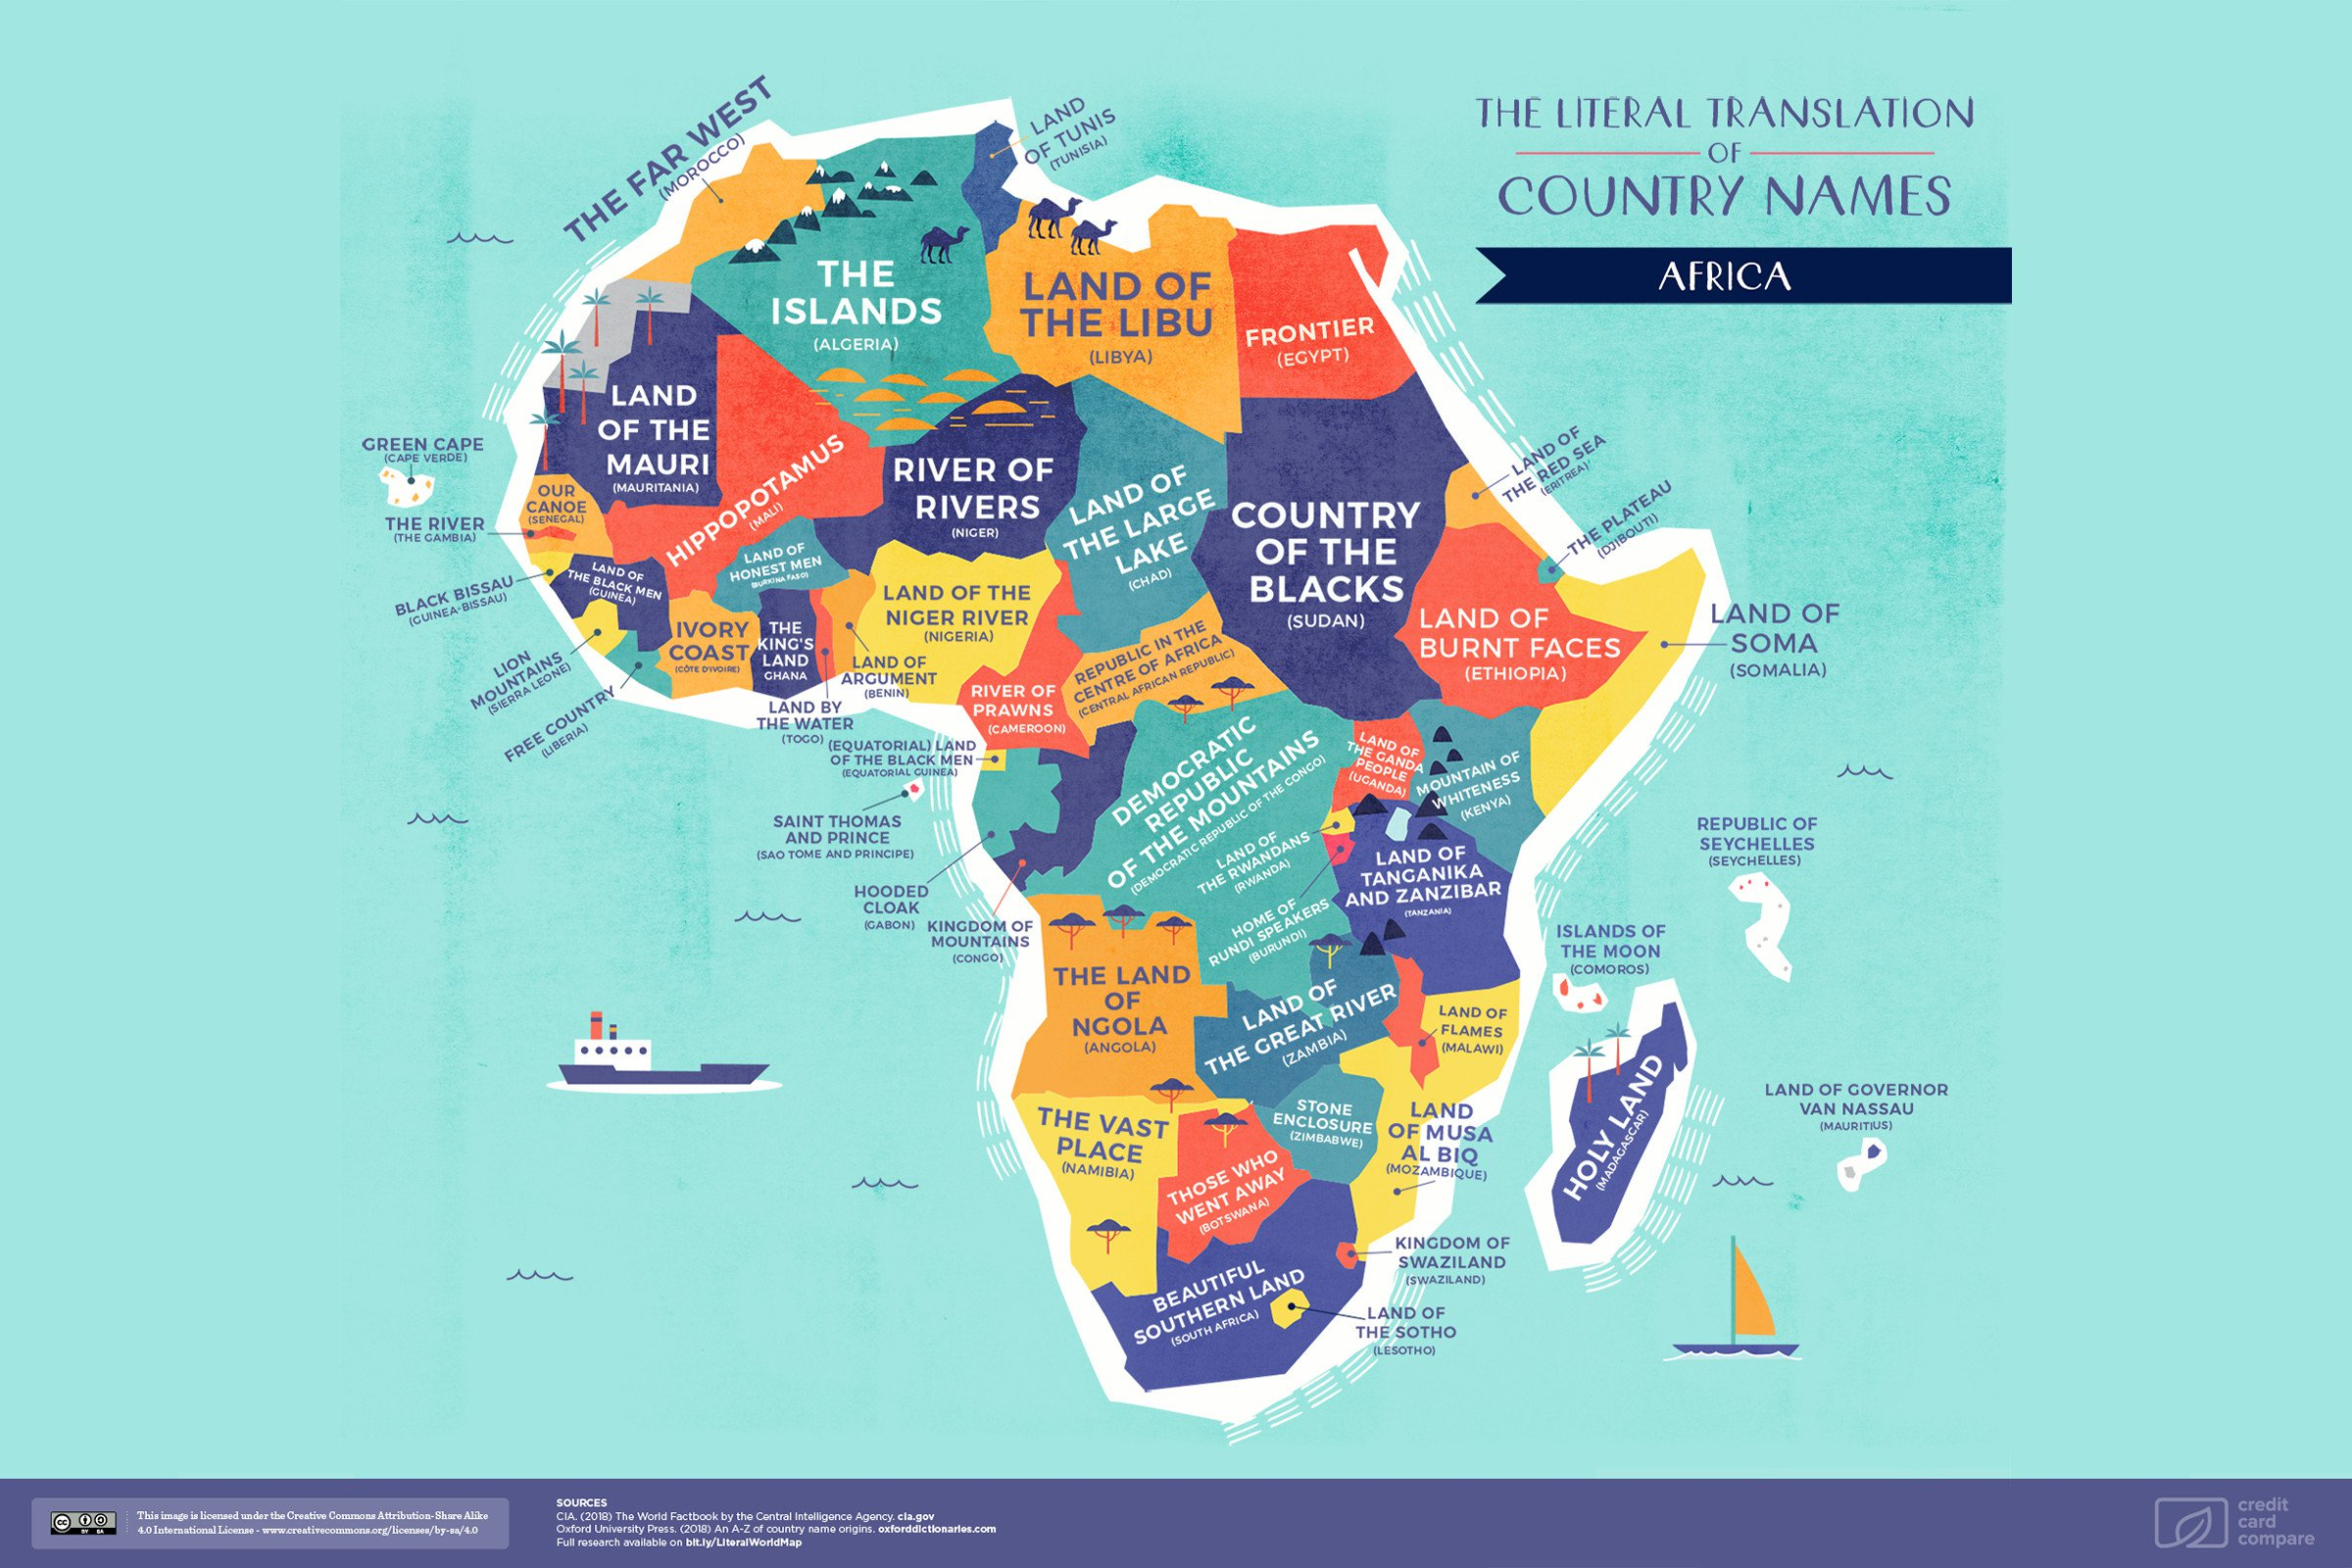 03_Literal-Translation-Of-Country-Names_Africa..original